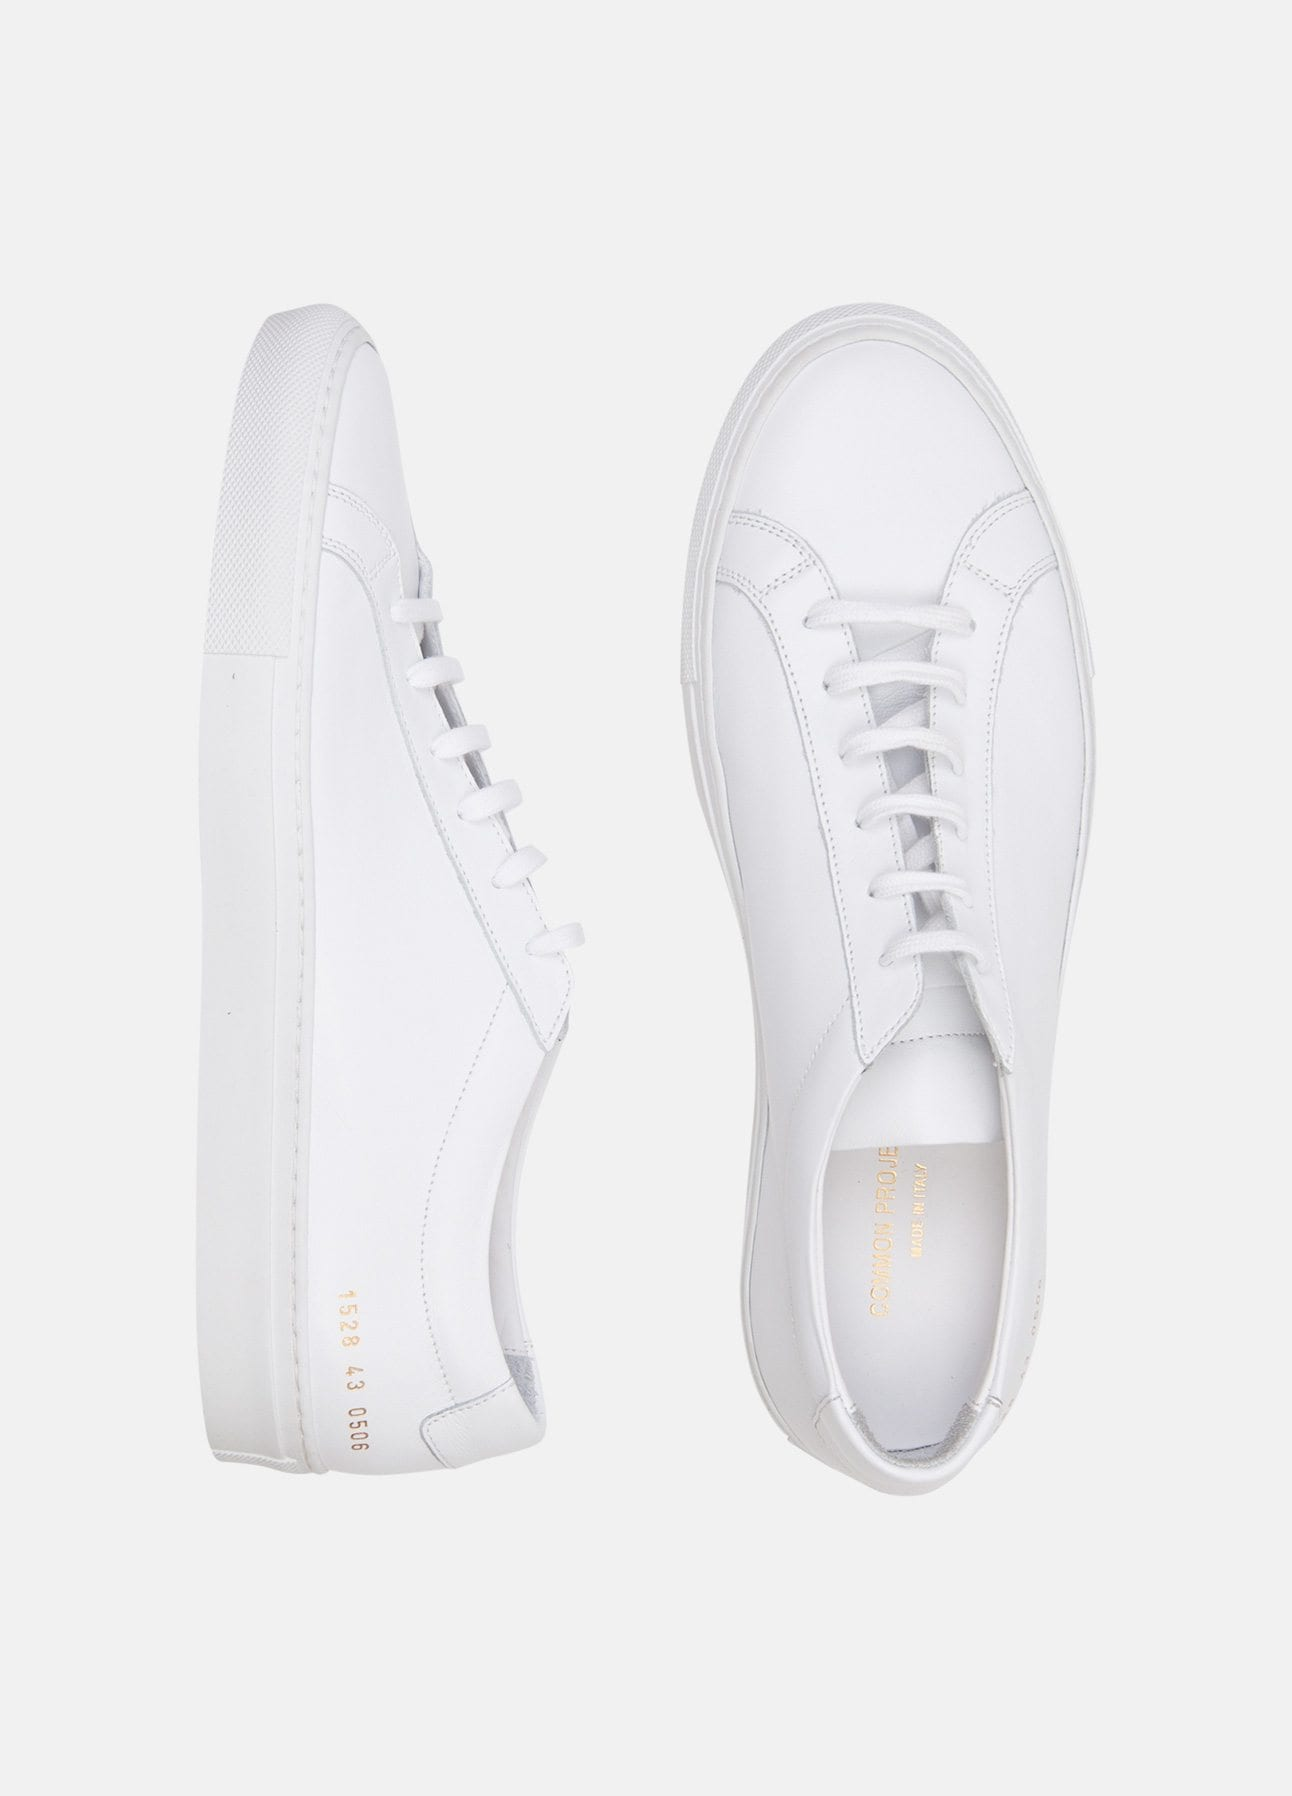 Hvide sneakers fra Common Projects